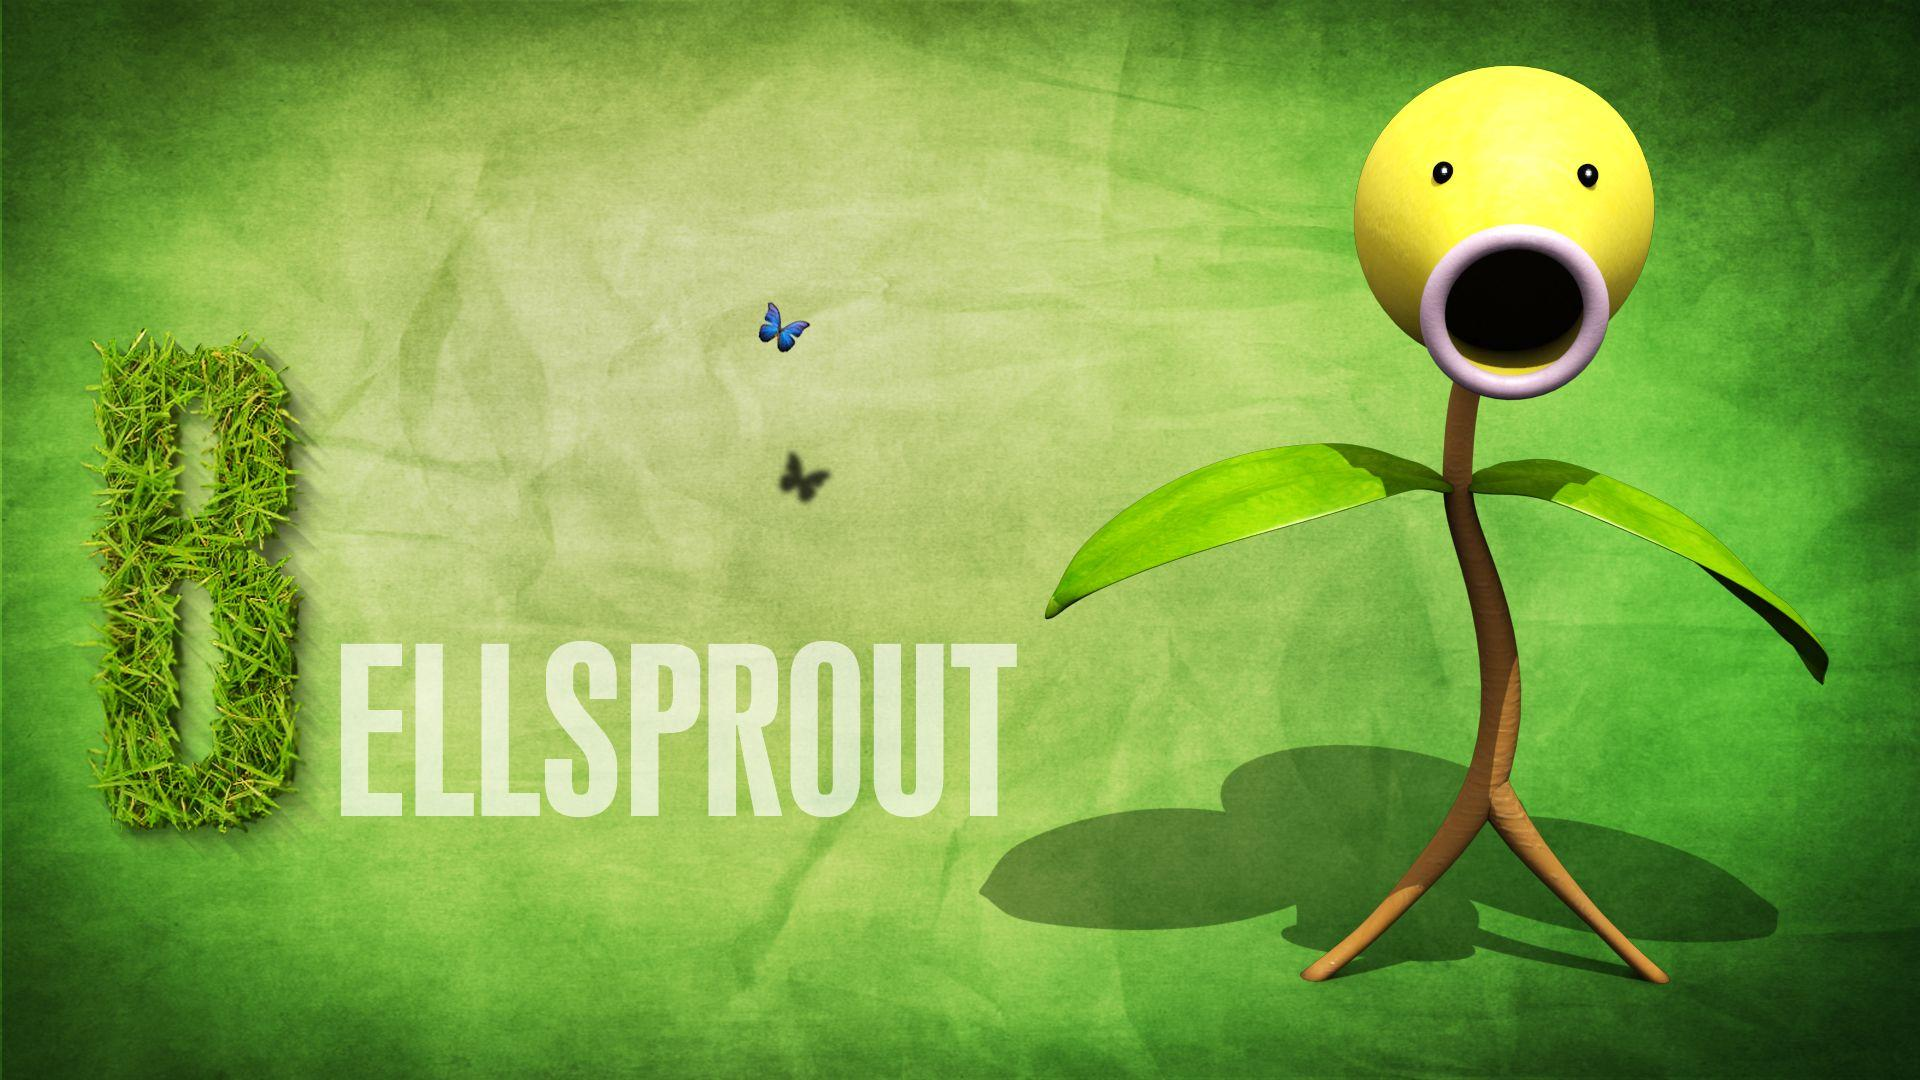 Bellsprout by TheOddApple on DeviantArt